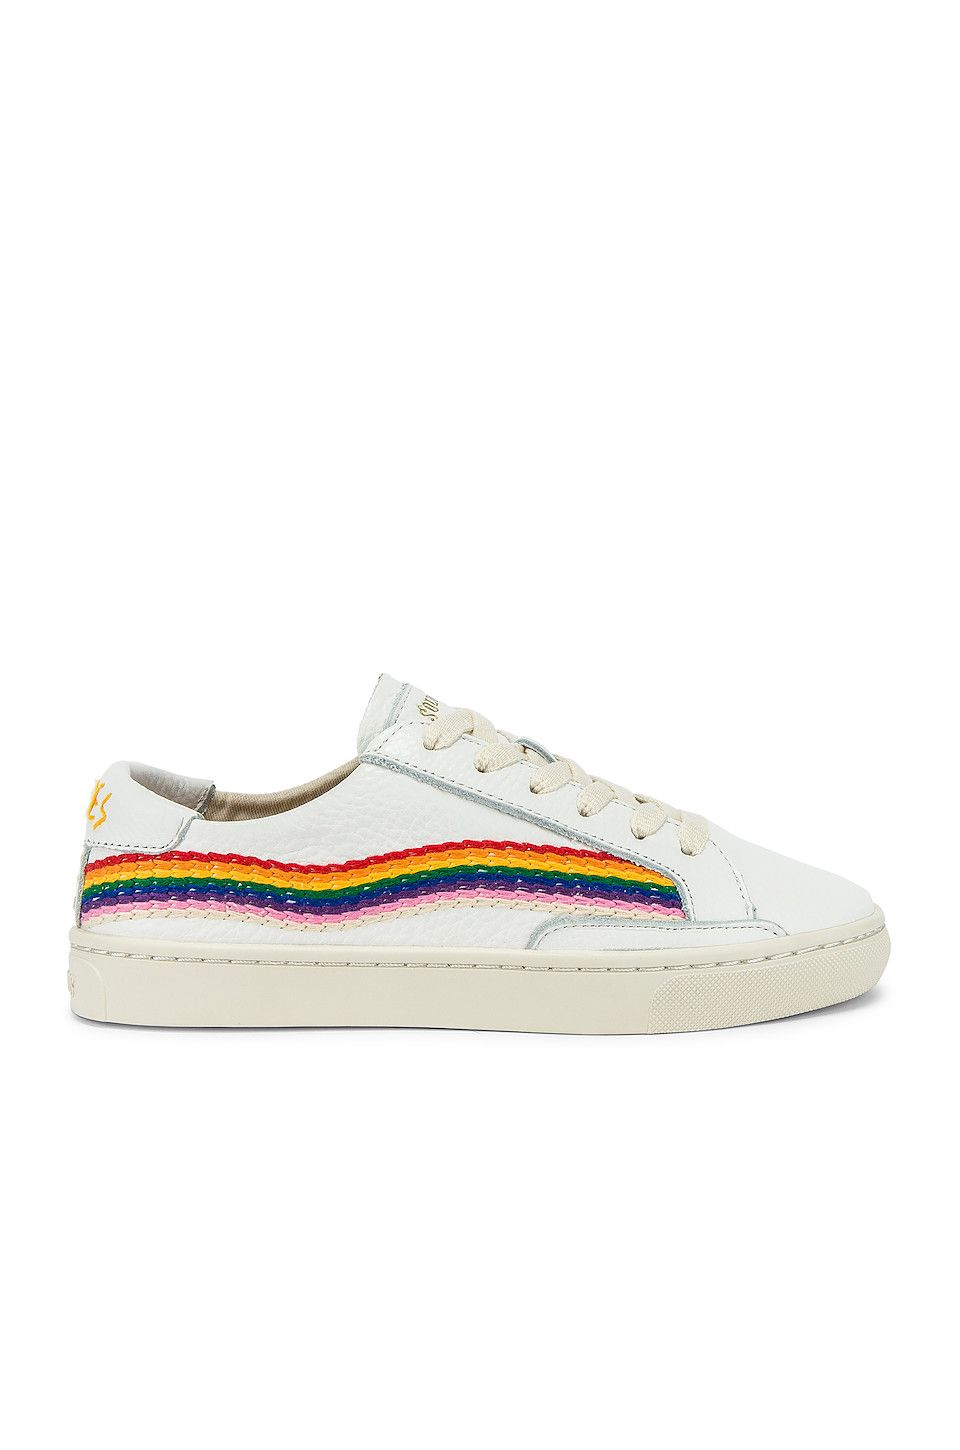 If Everyday Brands Designed Sneakers | Aphrodite